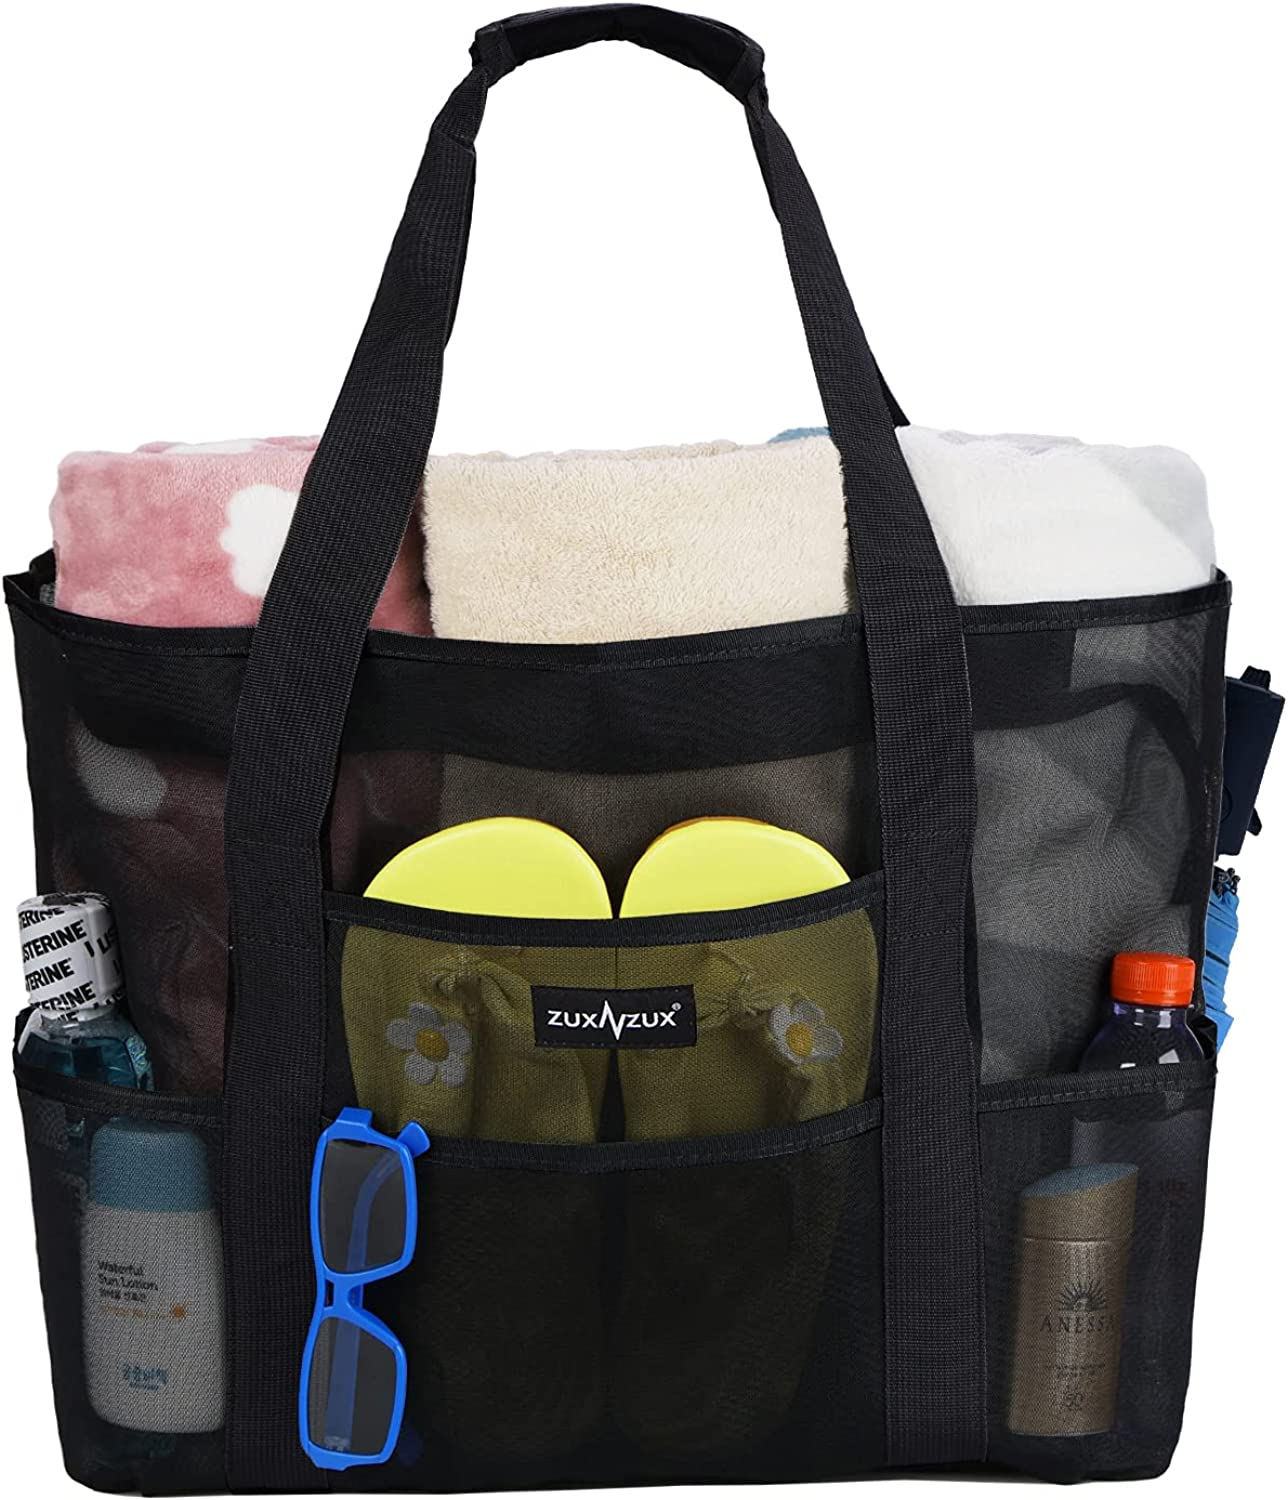 ZUXNZUX Beach Bag Max 82% OFF Mesh Lightwei Oversized Totes Toy Large-scale sale